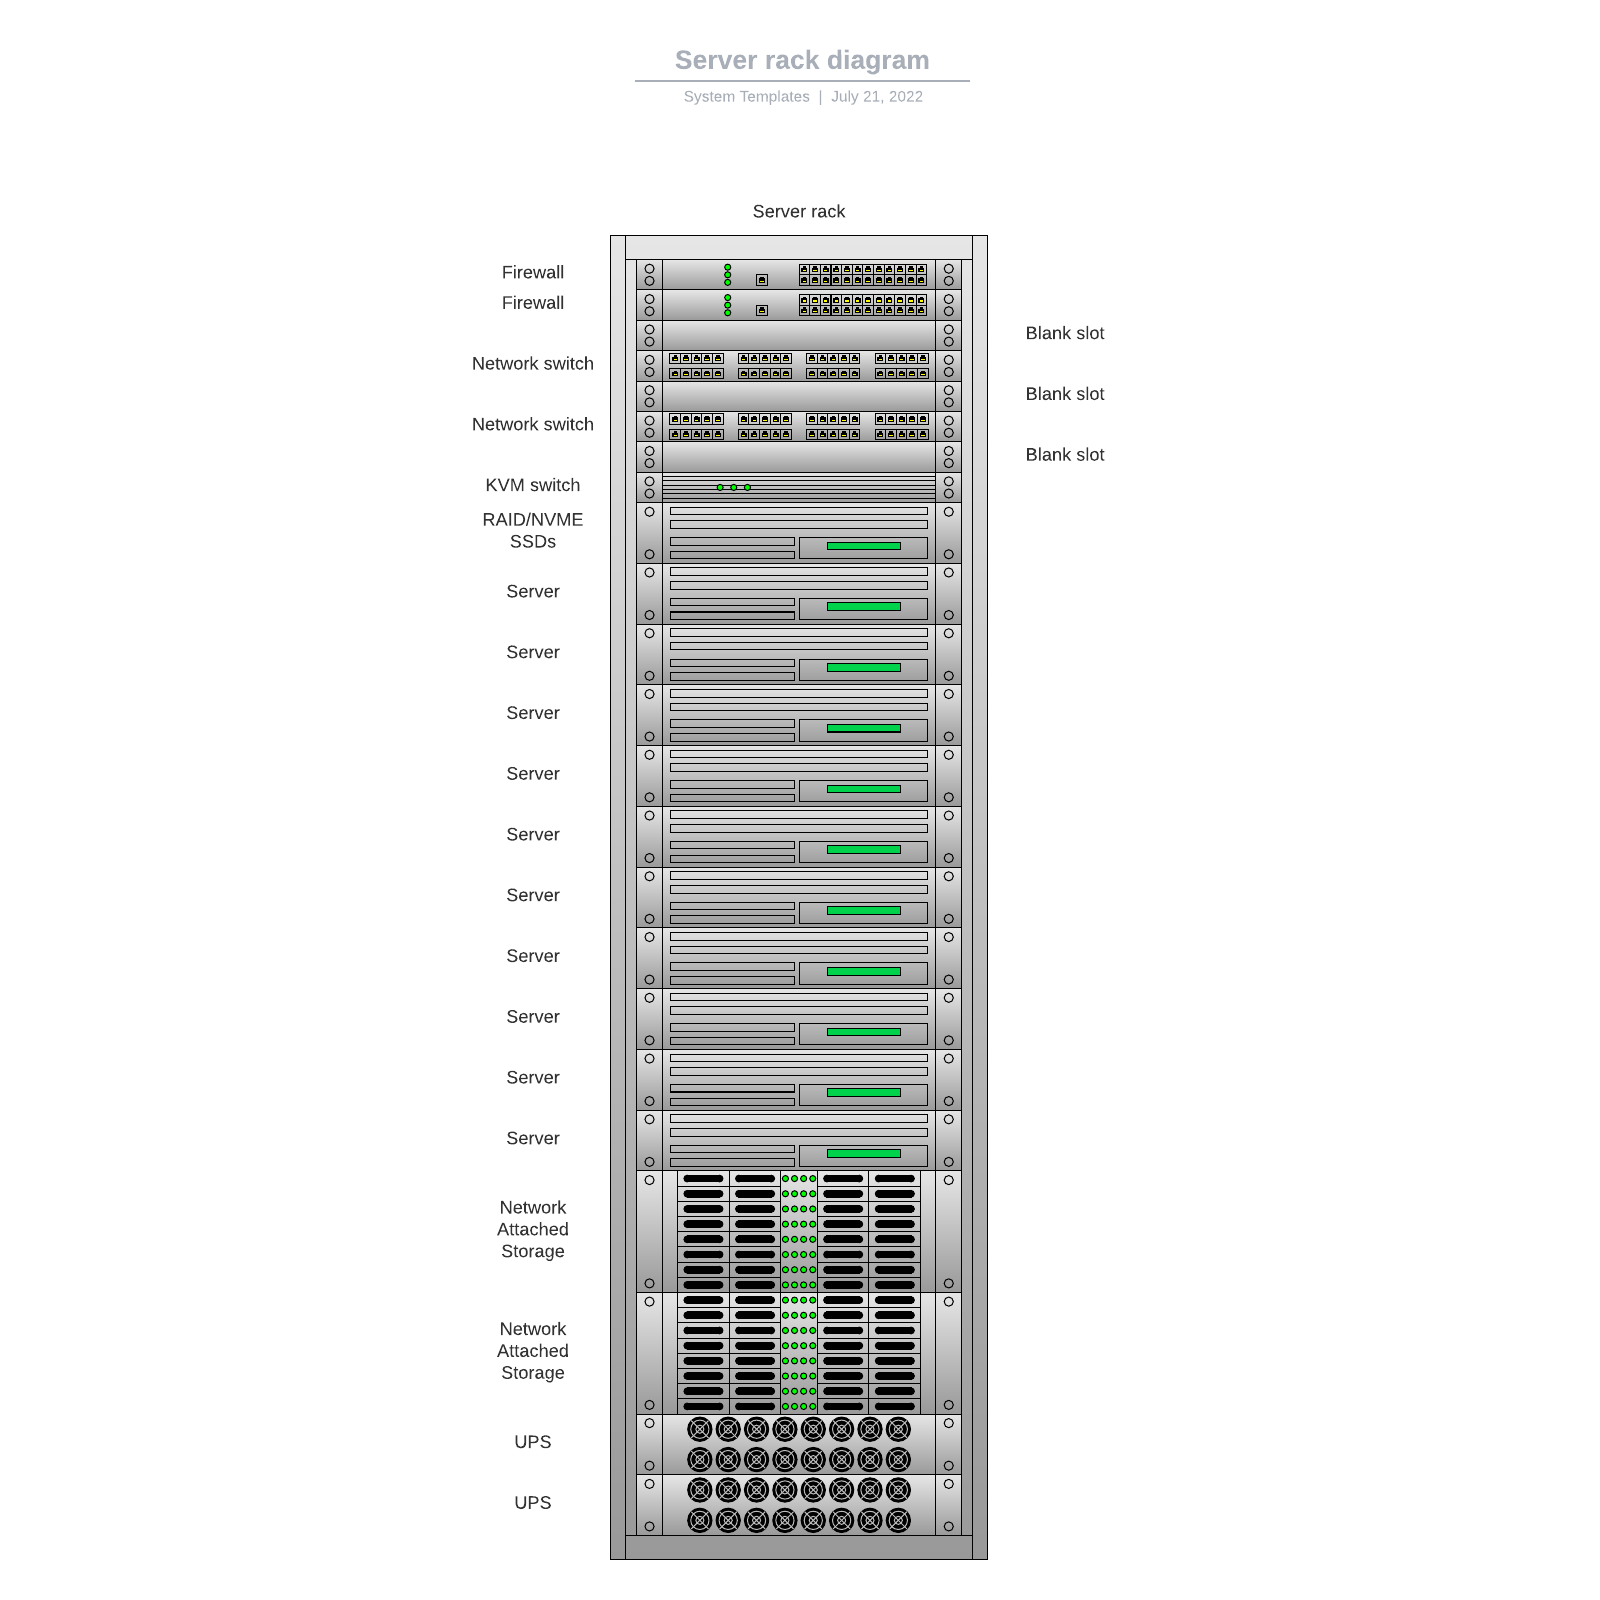 Server rack diagram